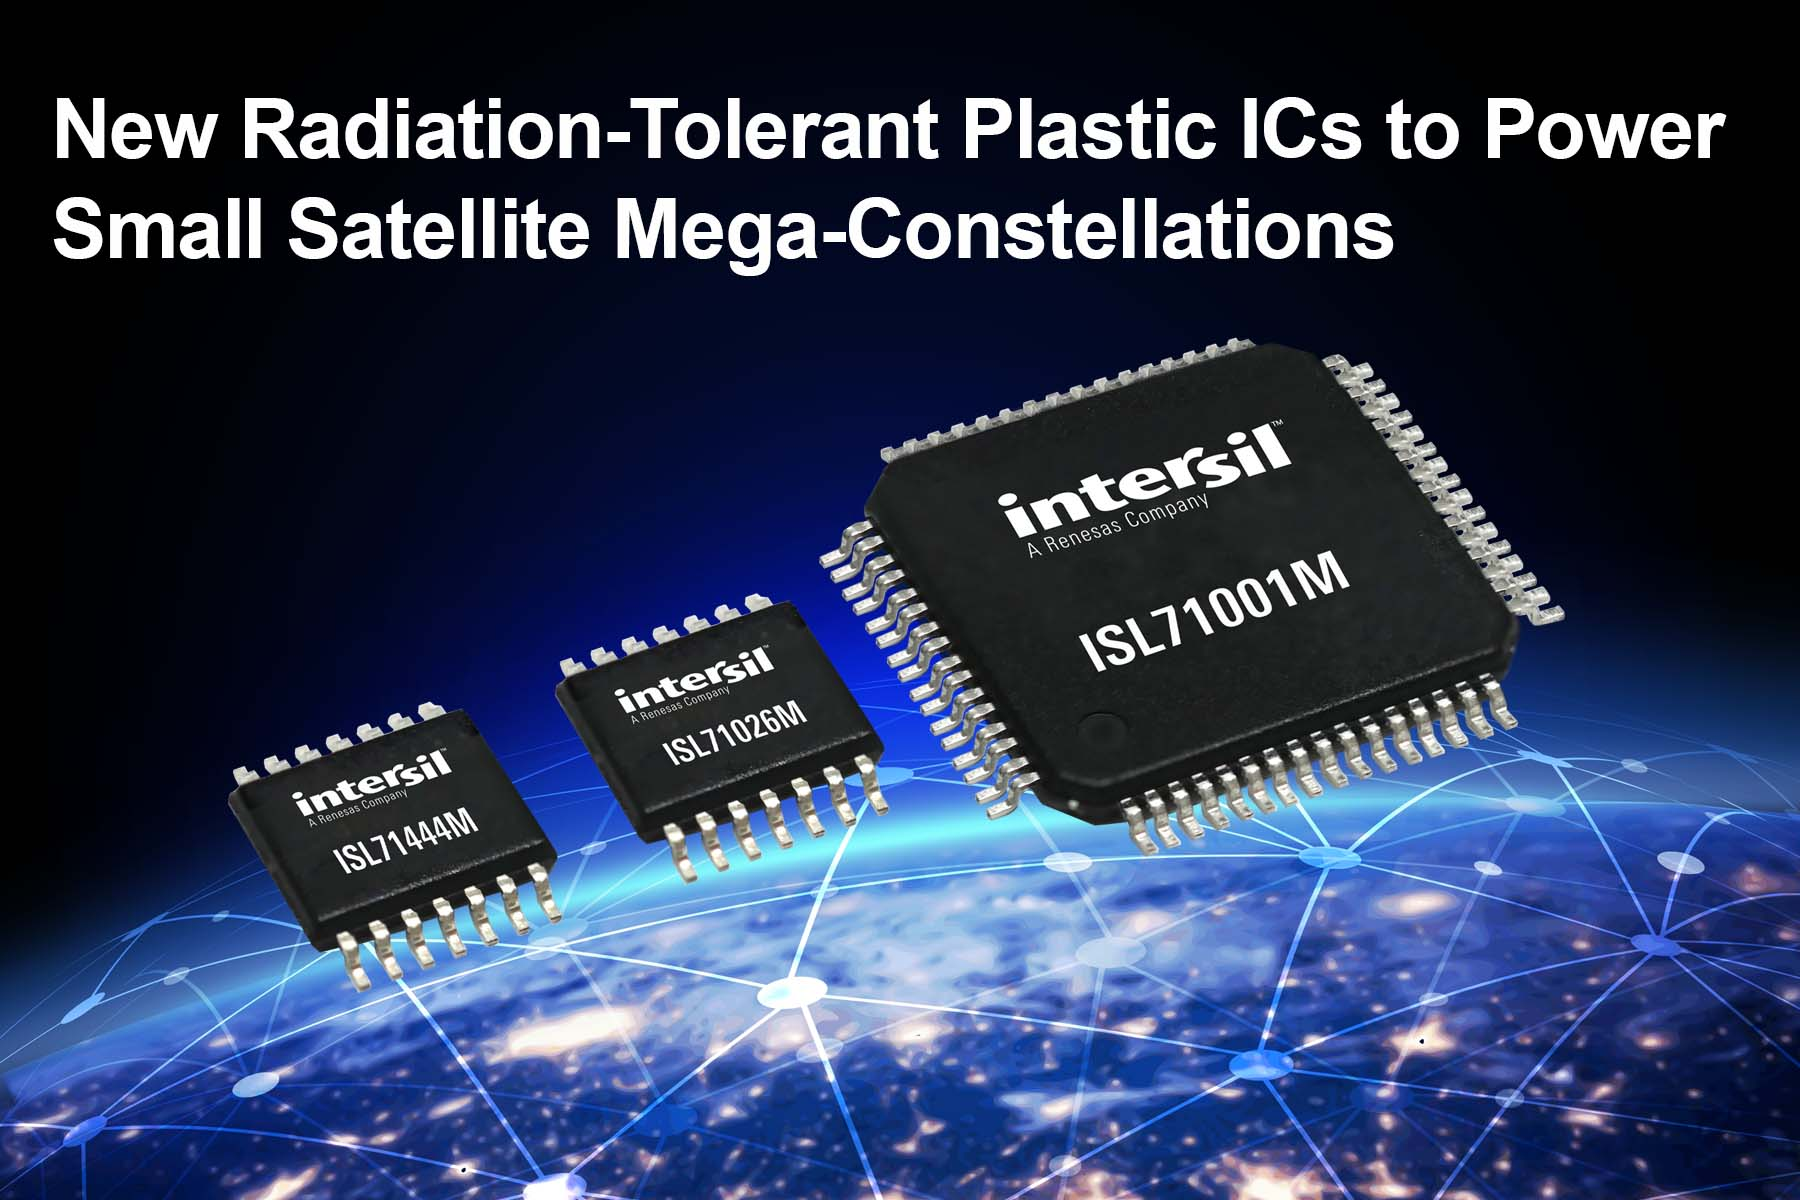 Radiation-Tolerant Plastic ICs Power Small Satellite Mega-Constellations